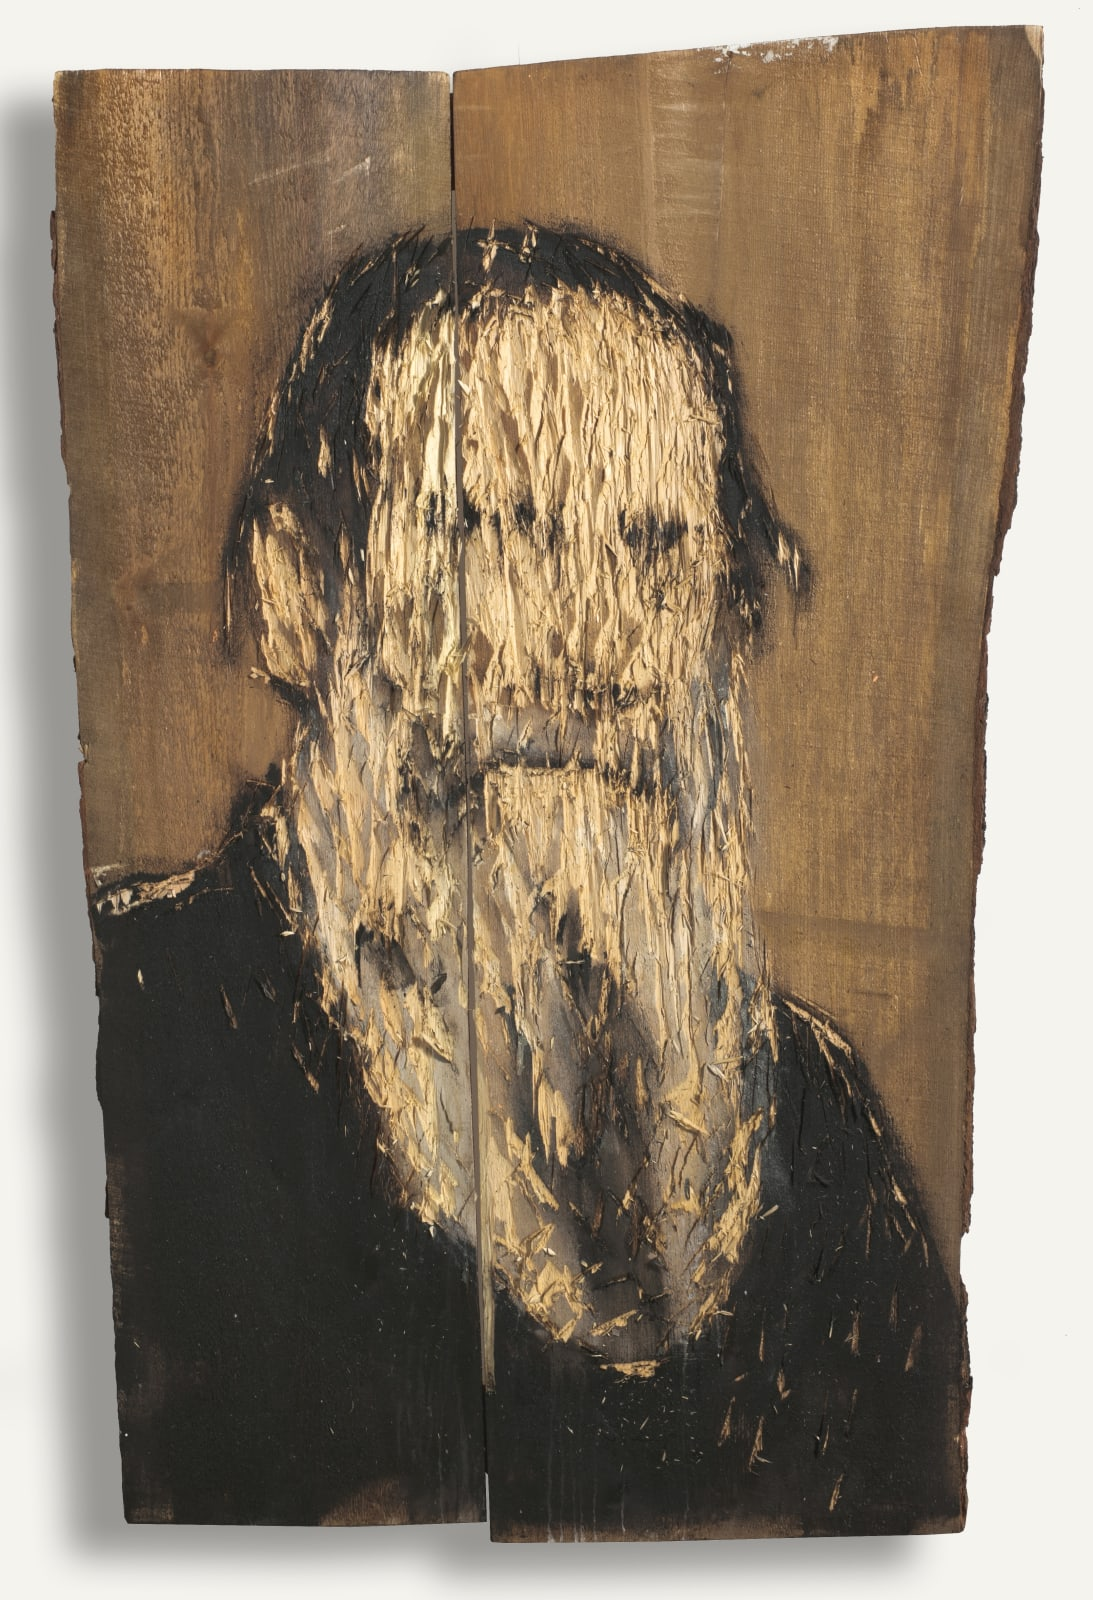 Nestor Engelke Wooden portrait of Lev Tolstoy from the series